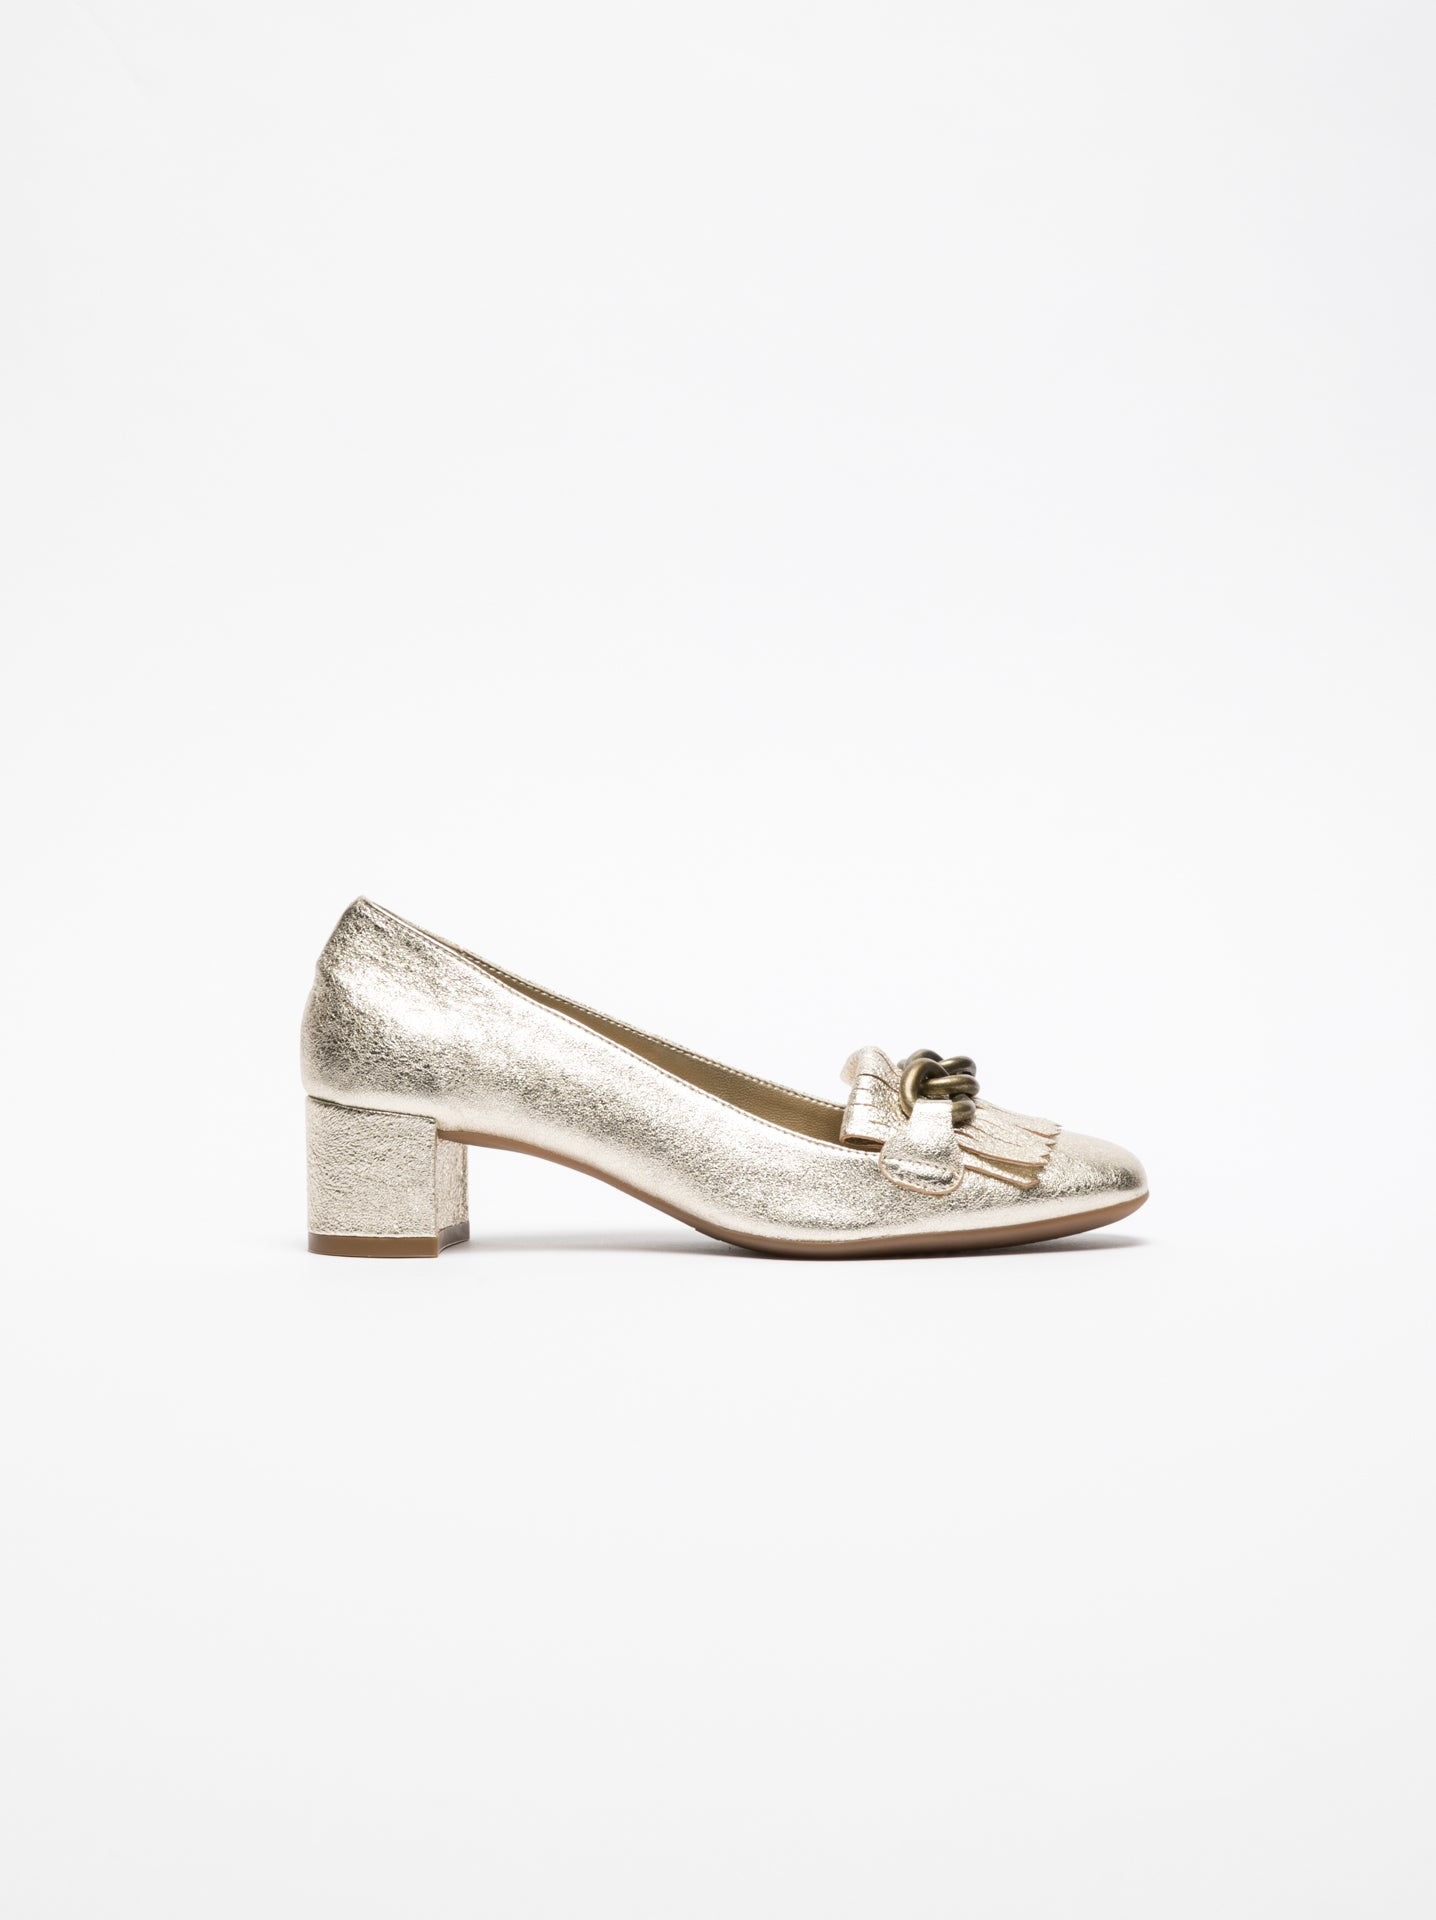 The Flexx Gold Block Heel Shoes